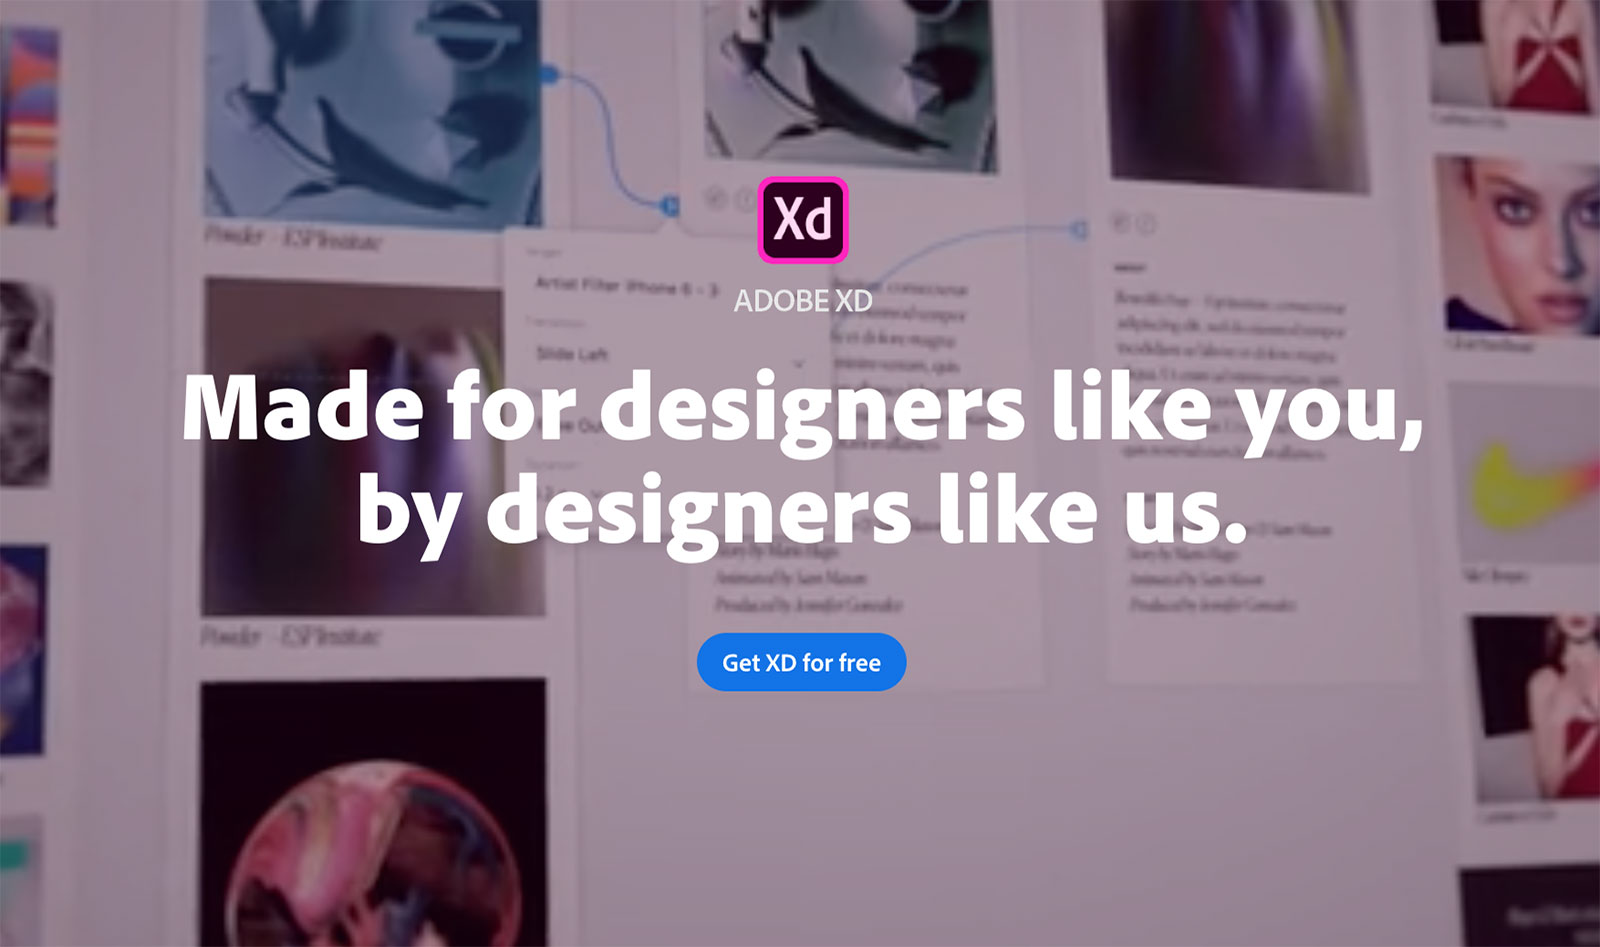 Adobe Xd website